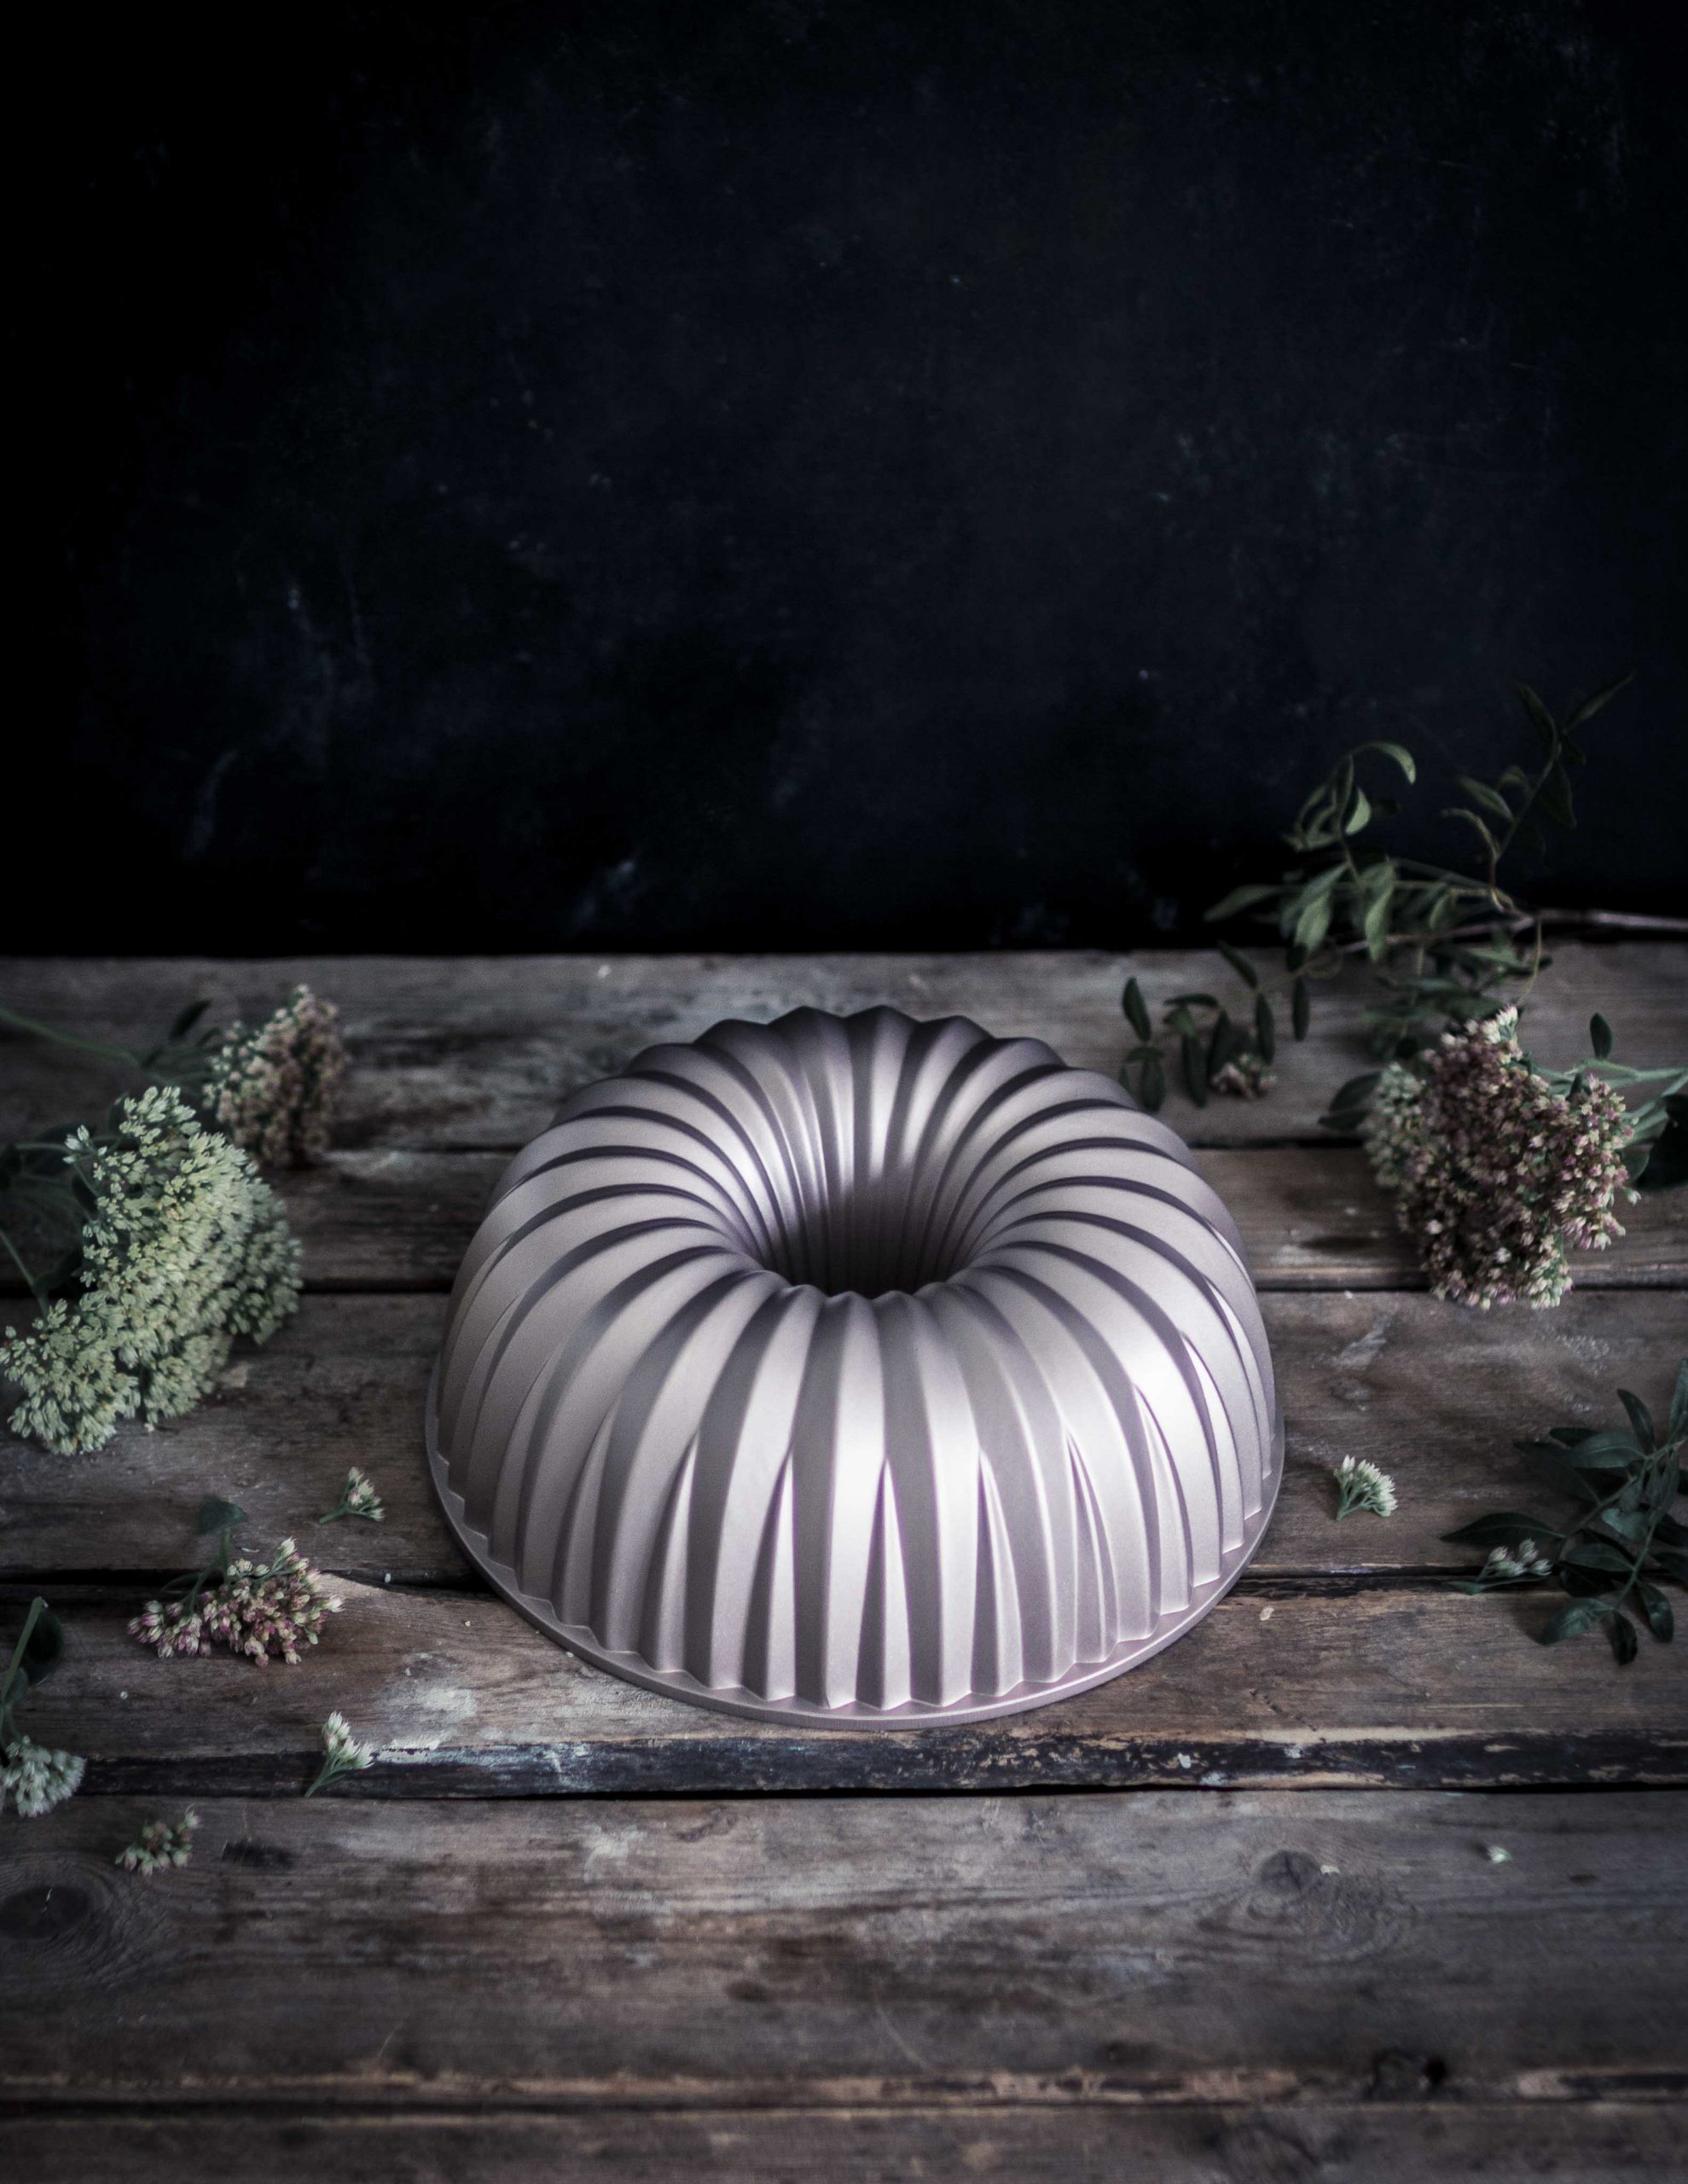 Cast aluminium bundt cake pan Emma Ivane Heirol collection kakkuvuoka valualumiini